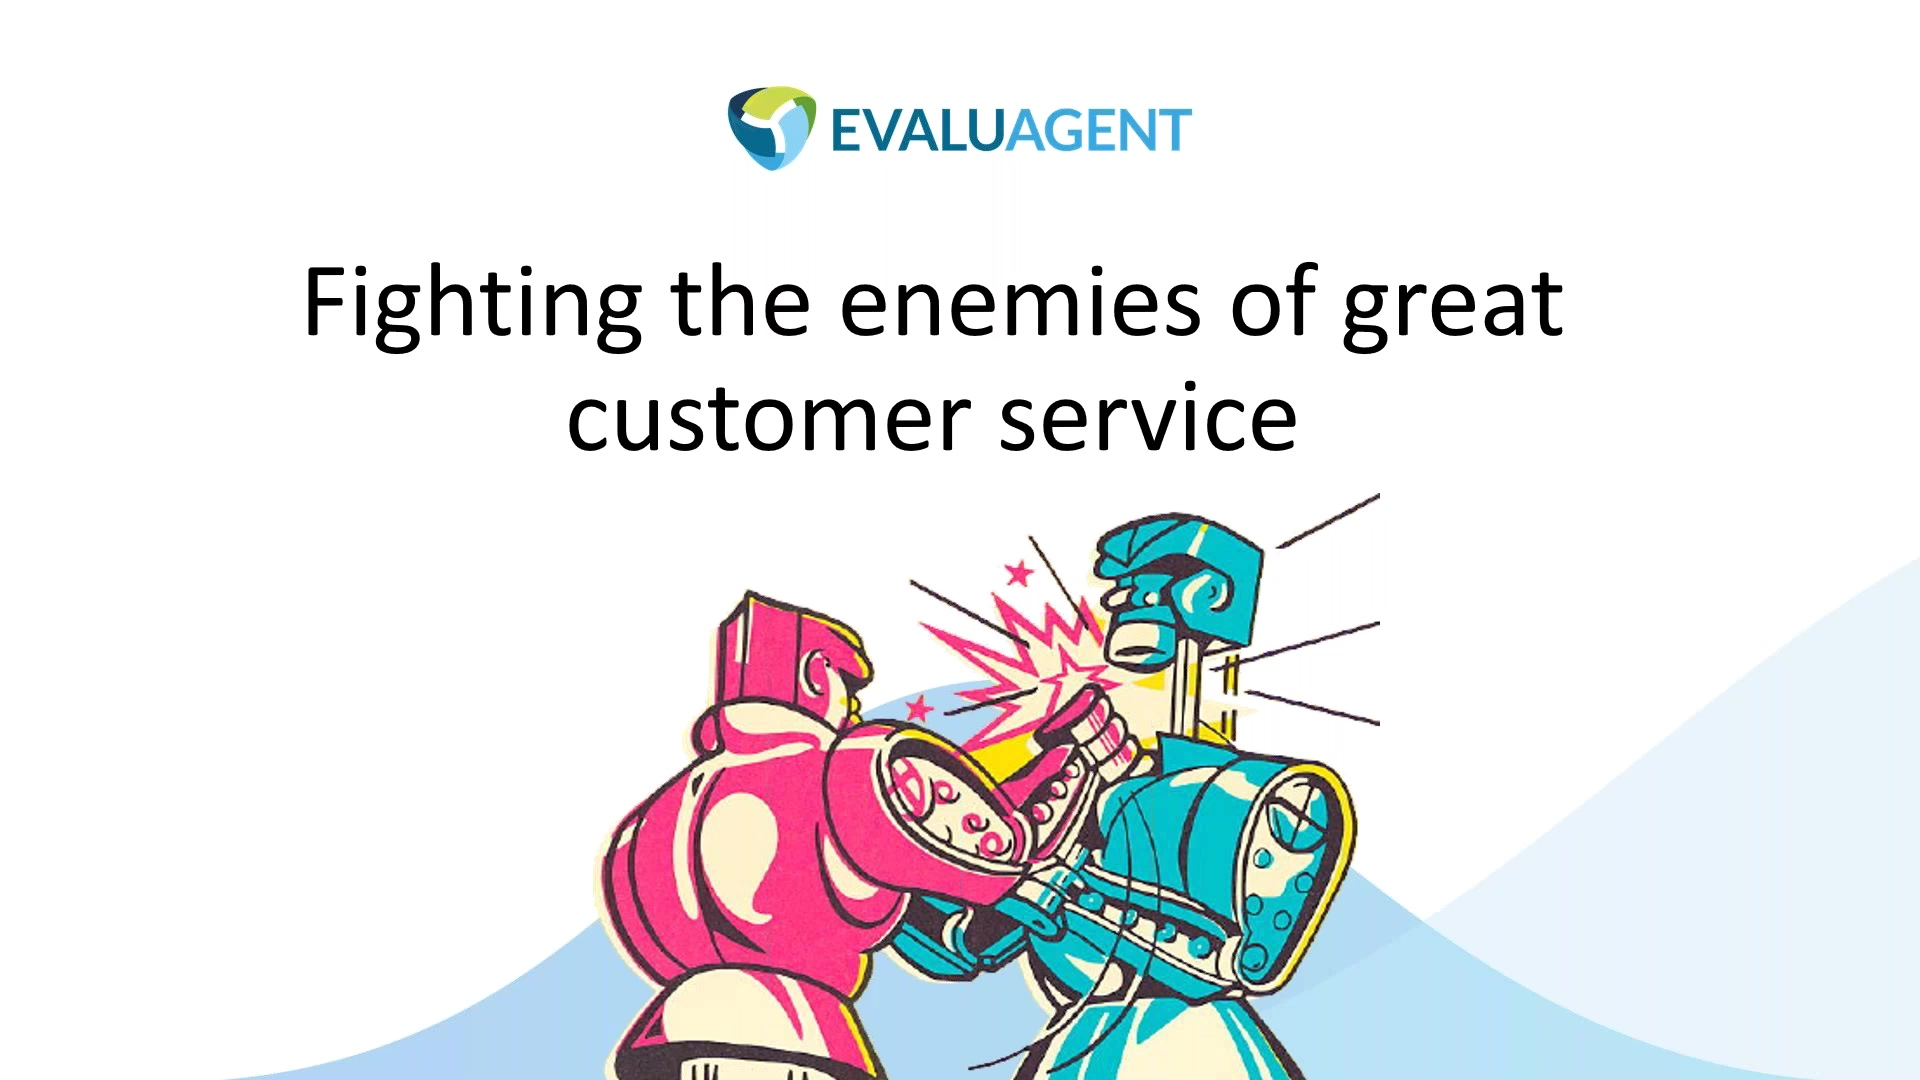 Fighting the enemies of great customer service